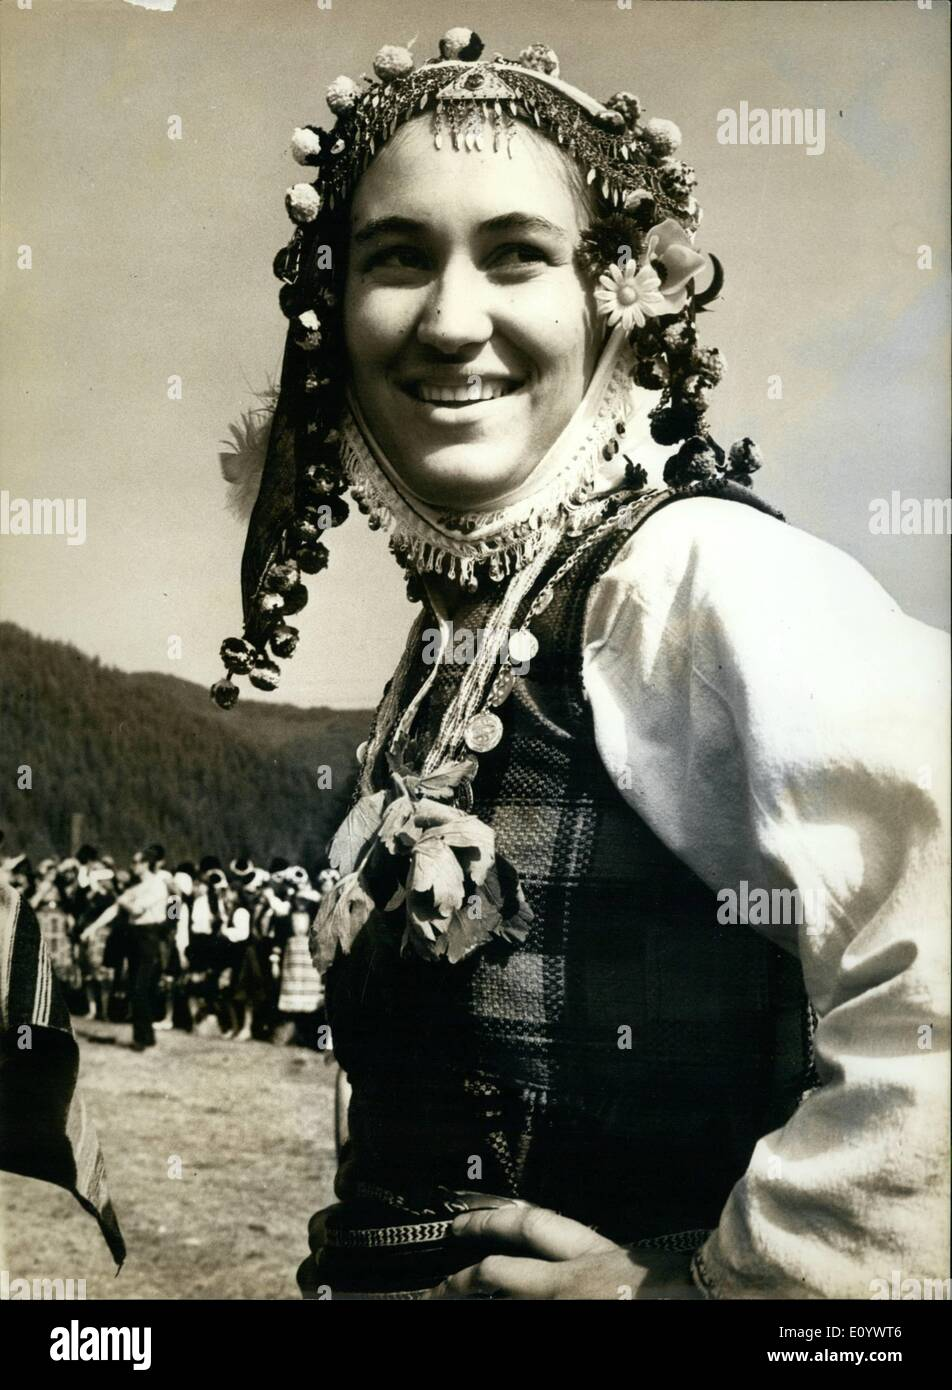 Aug. 08, 1971 - Folklore Festival: OPS: One of the many participants in the festival. - Stock Image